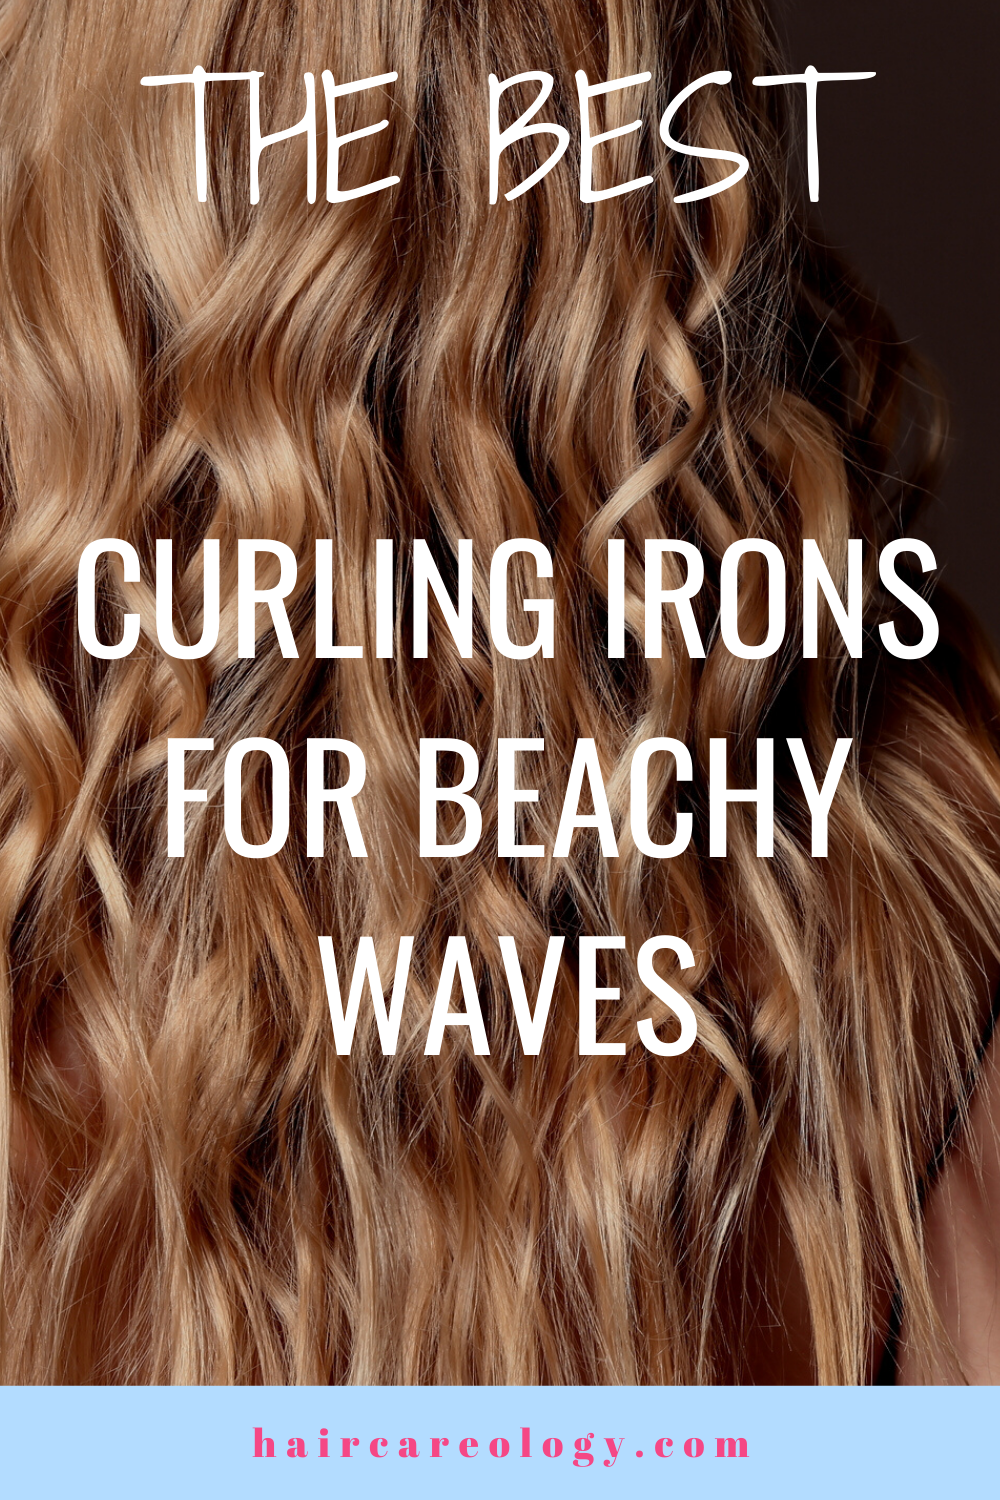 Best Curling Iron For Beachy Waves In 2020 Beach Wave Hair Beachy Waves Curling Iron